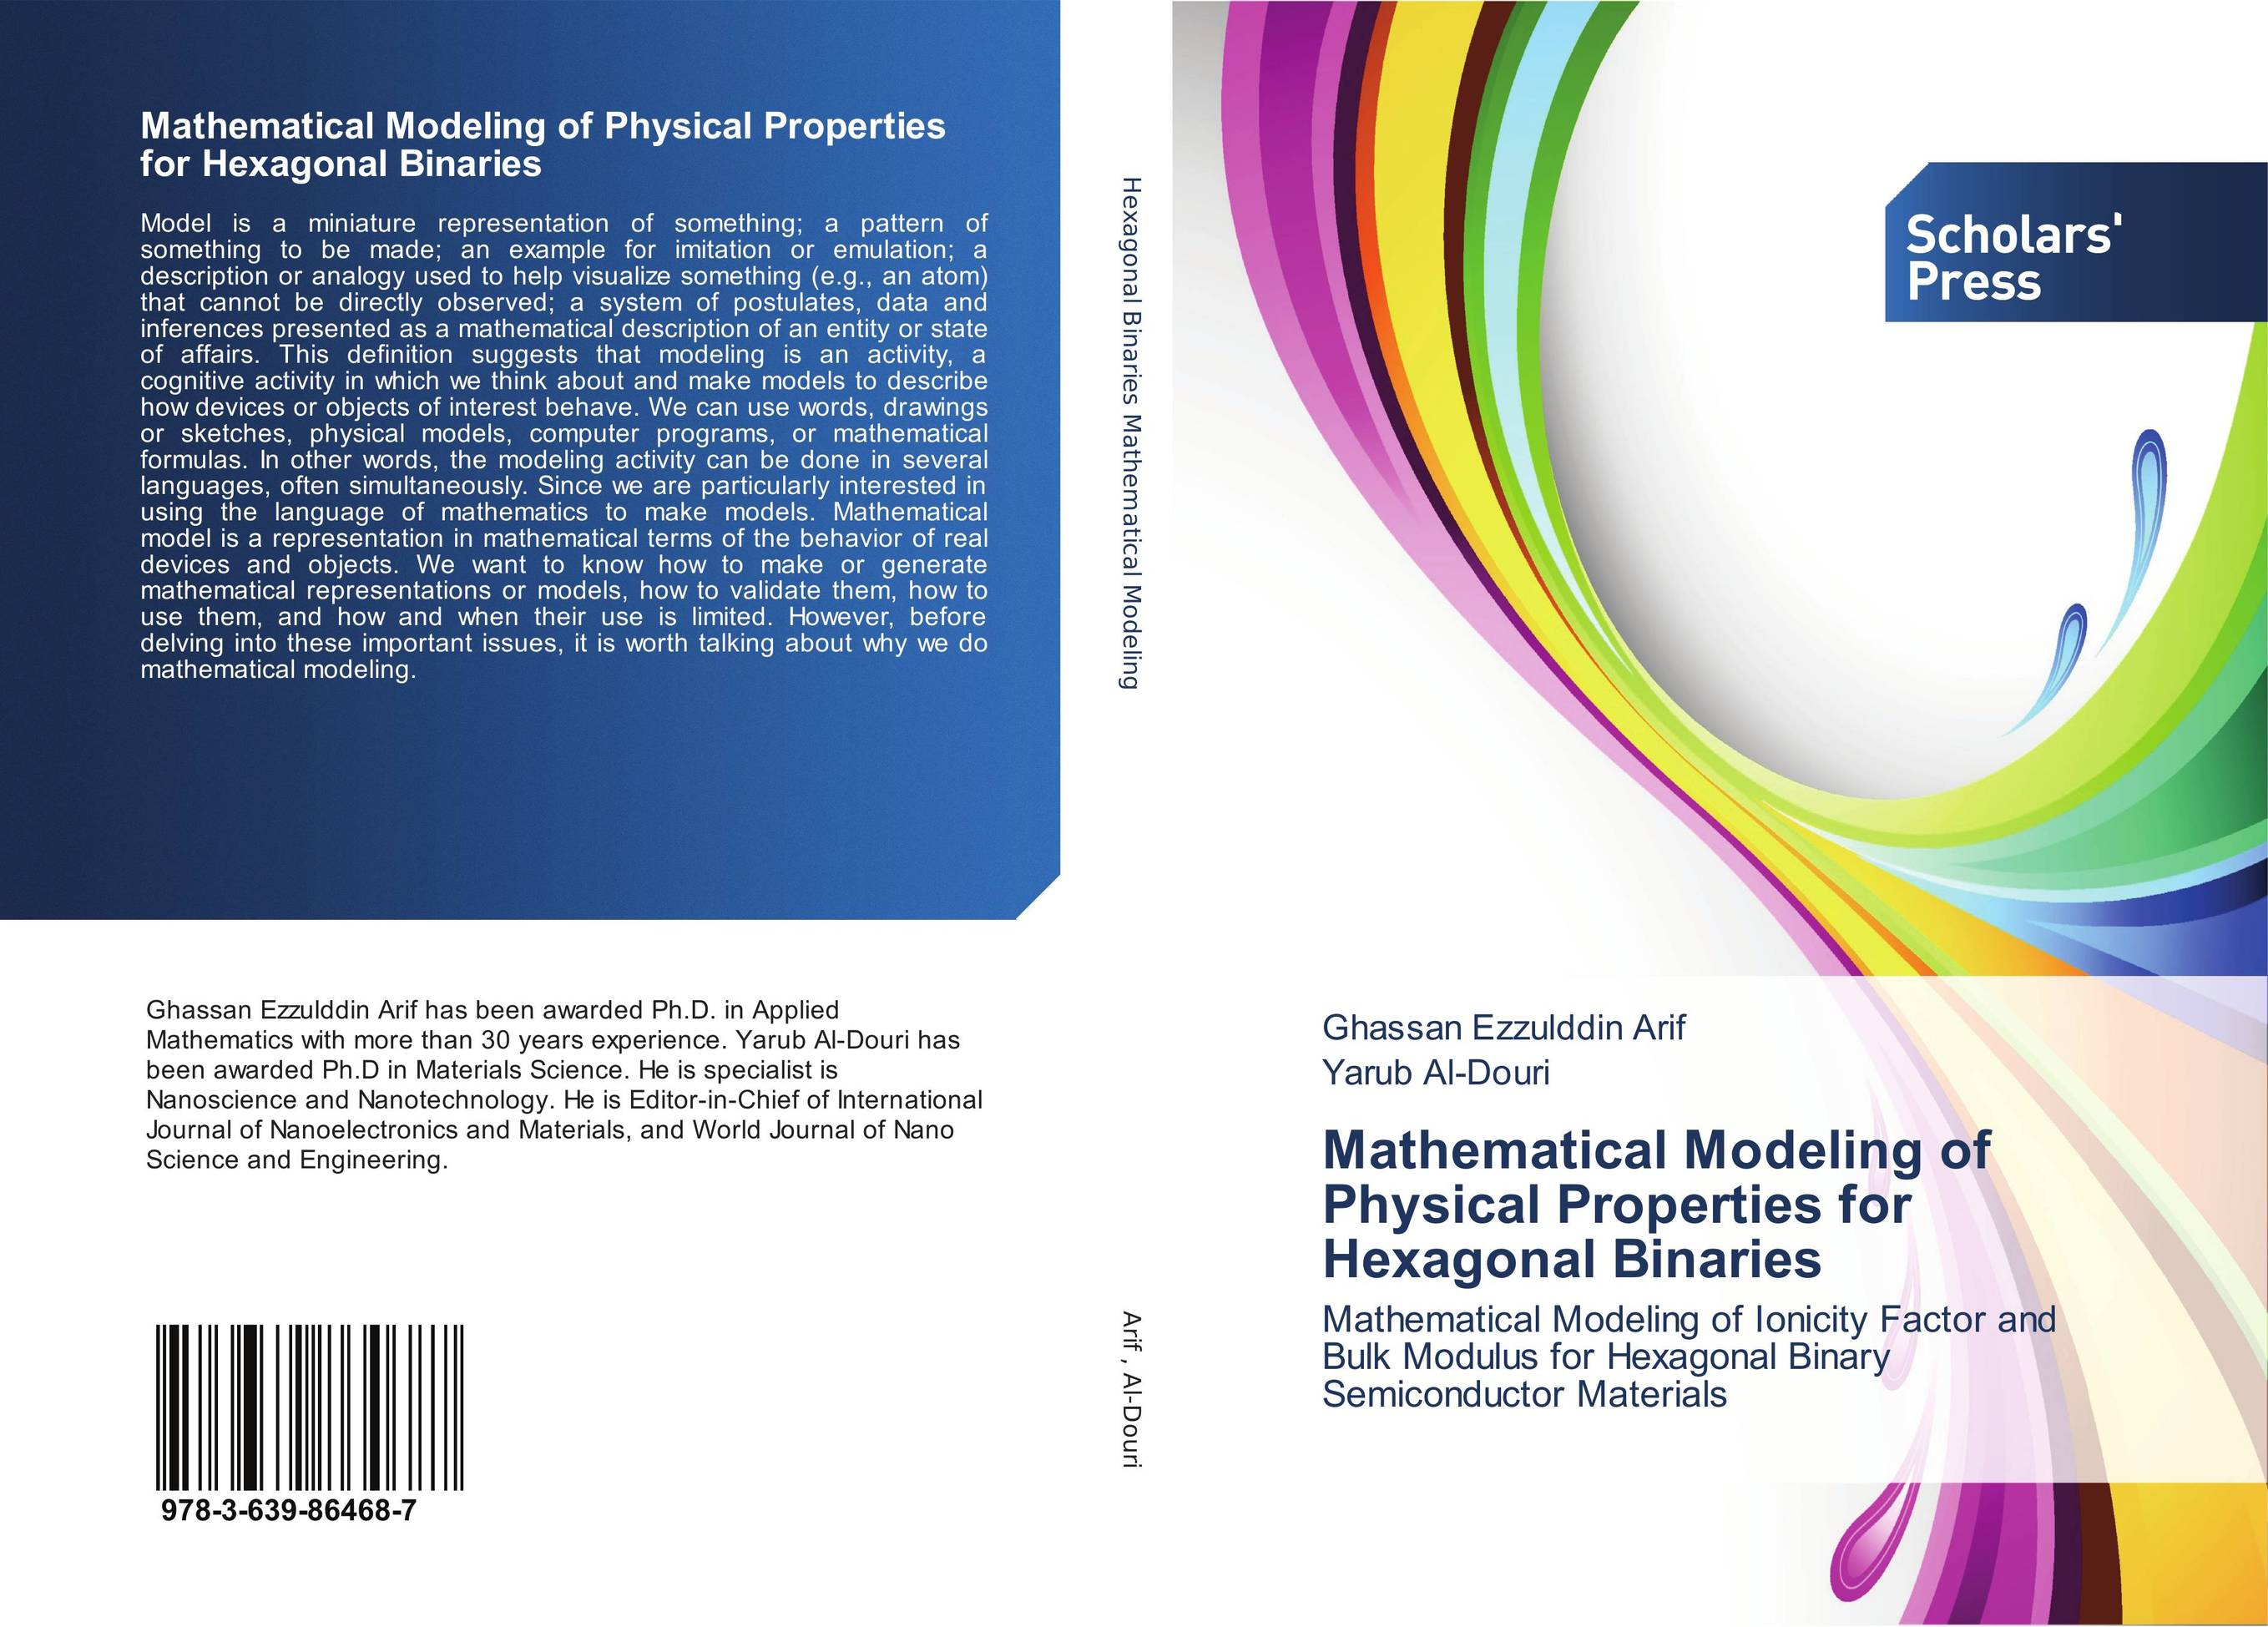 Mathematical Modeling of Physical Properties for Hexagonal Binaries entesar dalah david bradley and andrew nisbet quantitative modeling of tissue activity curves of 64cu atsm